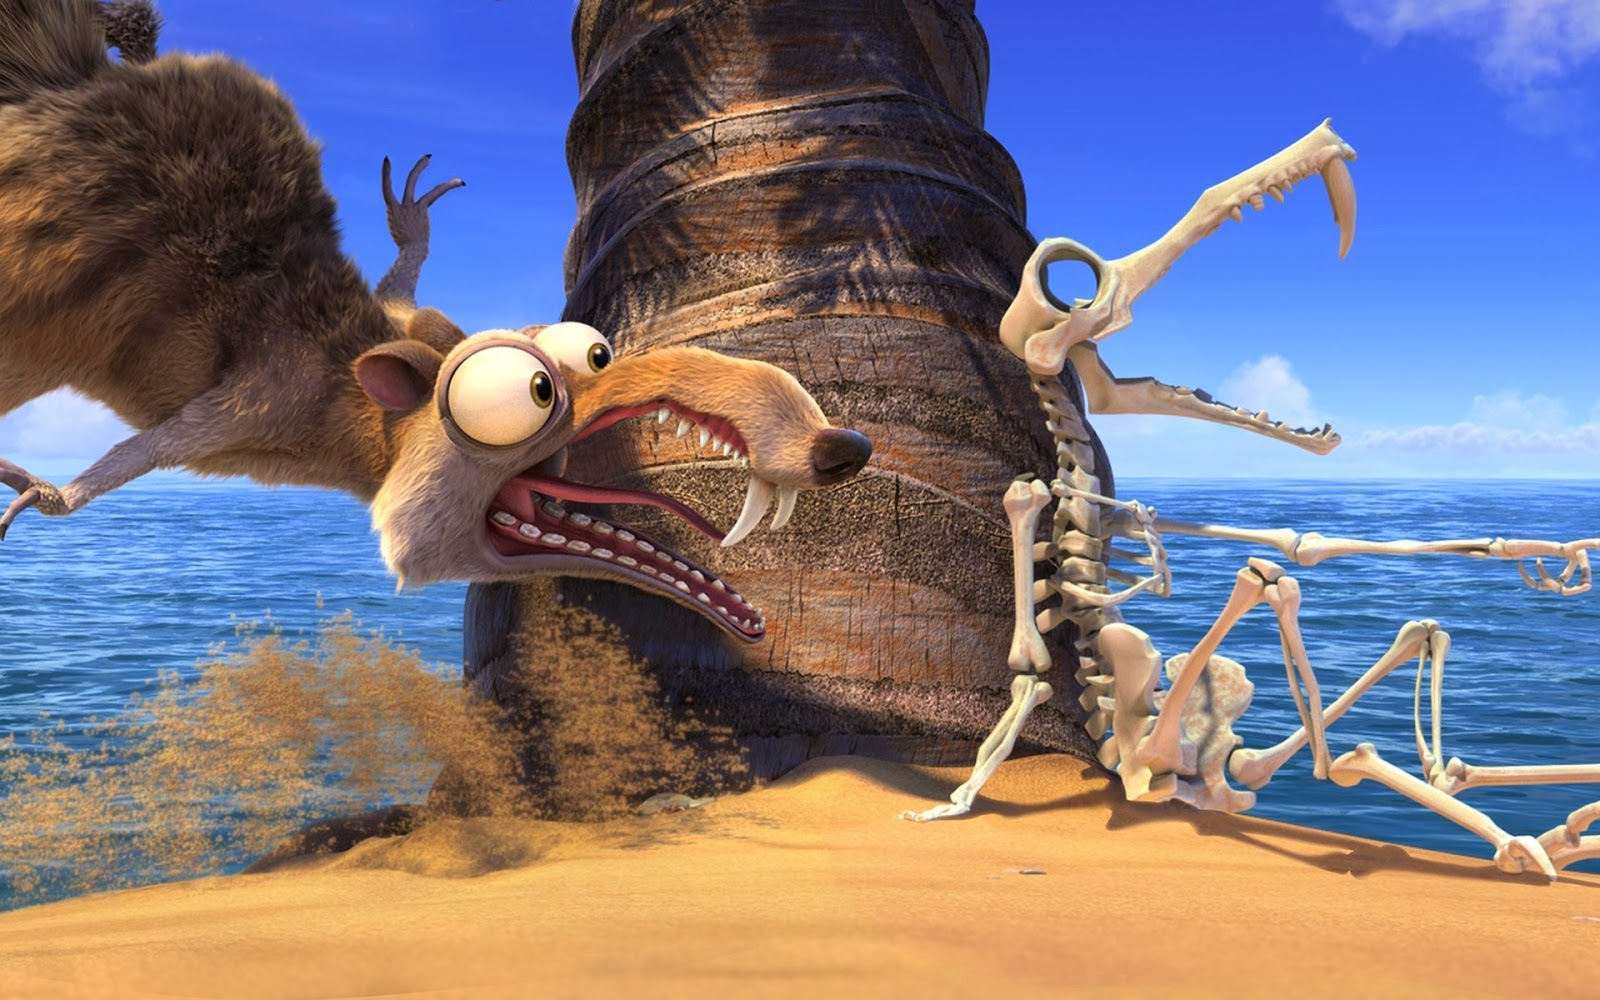 Ice age wallpapers HD - Beautiful wallpapers collection 2014